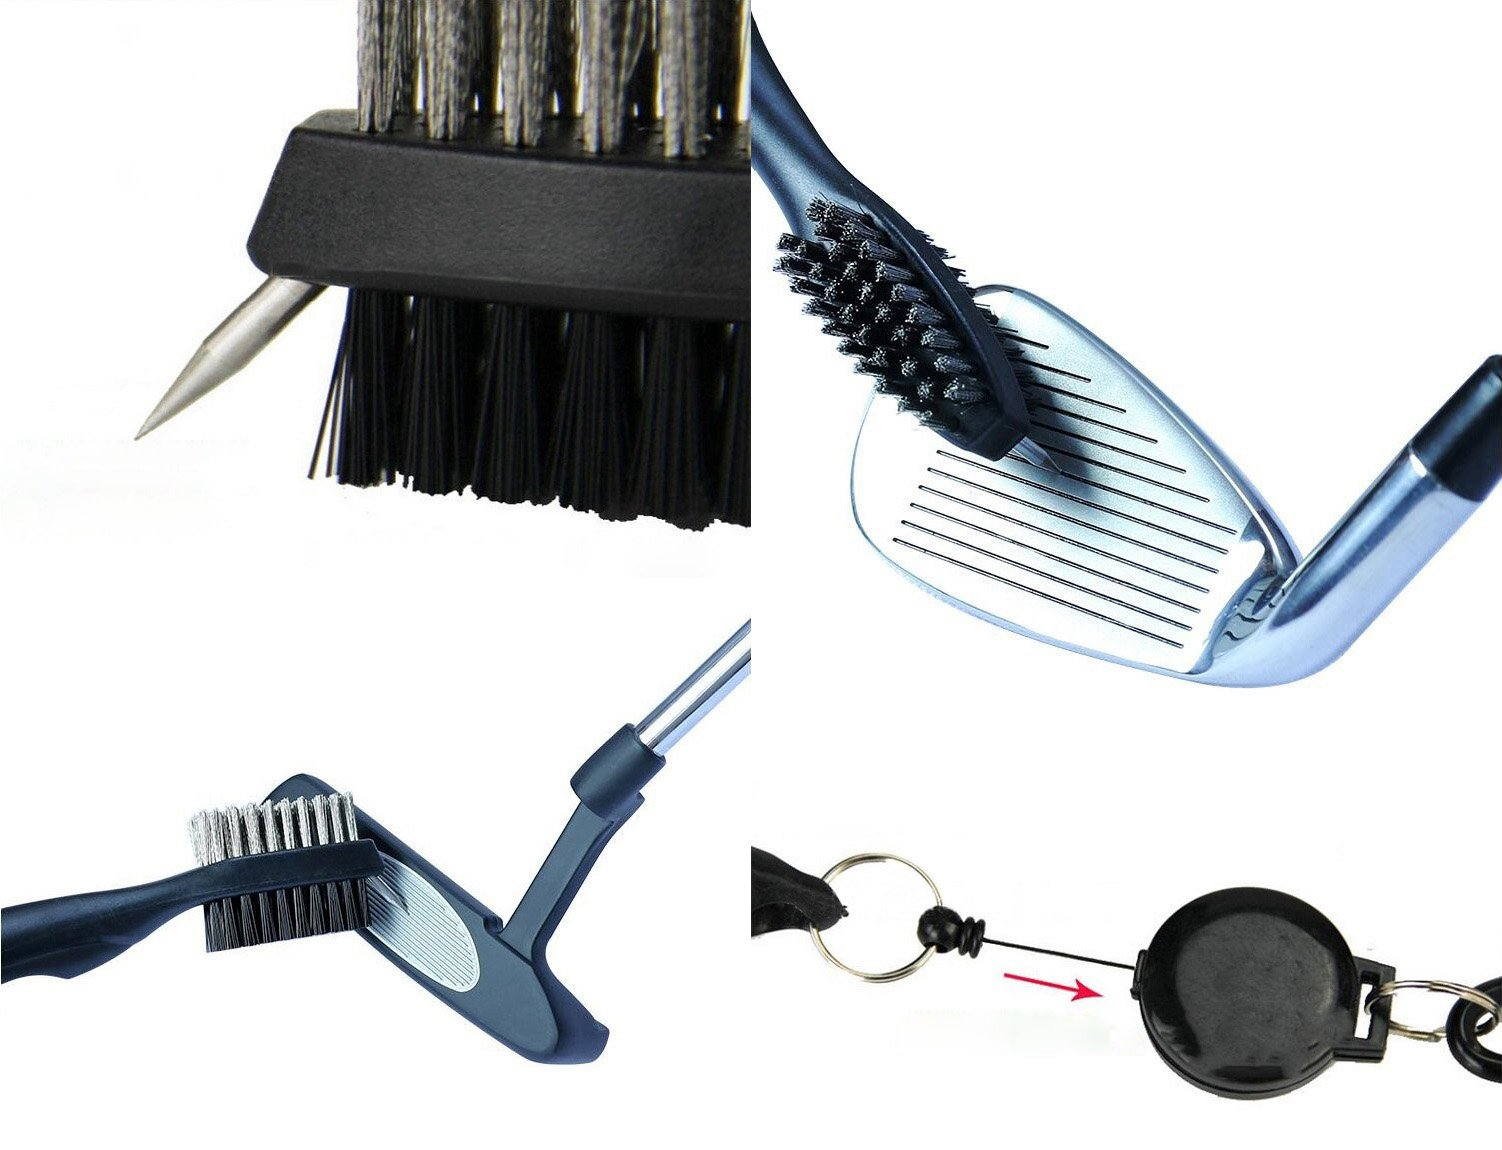 Xintan Tiger Golf Tool Set -Retractable Golf Club Brush and 6 Heads Golf Club Groove Sharpener.Perfect Gift for Golfers-Practical Sharp and Clean Kits For All Golf Irons by Xintan Tiger (Image #4)